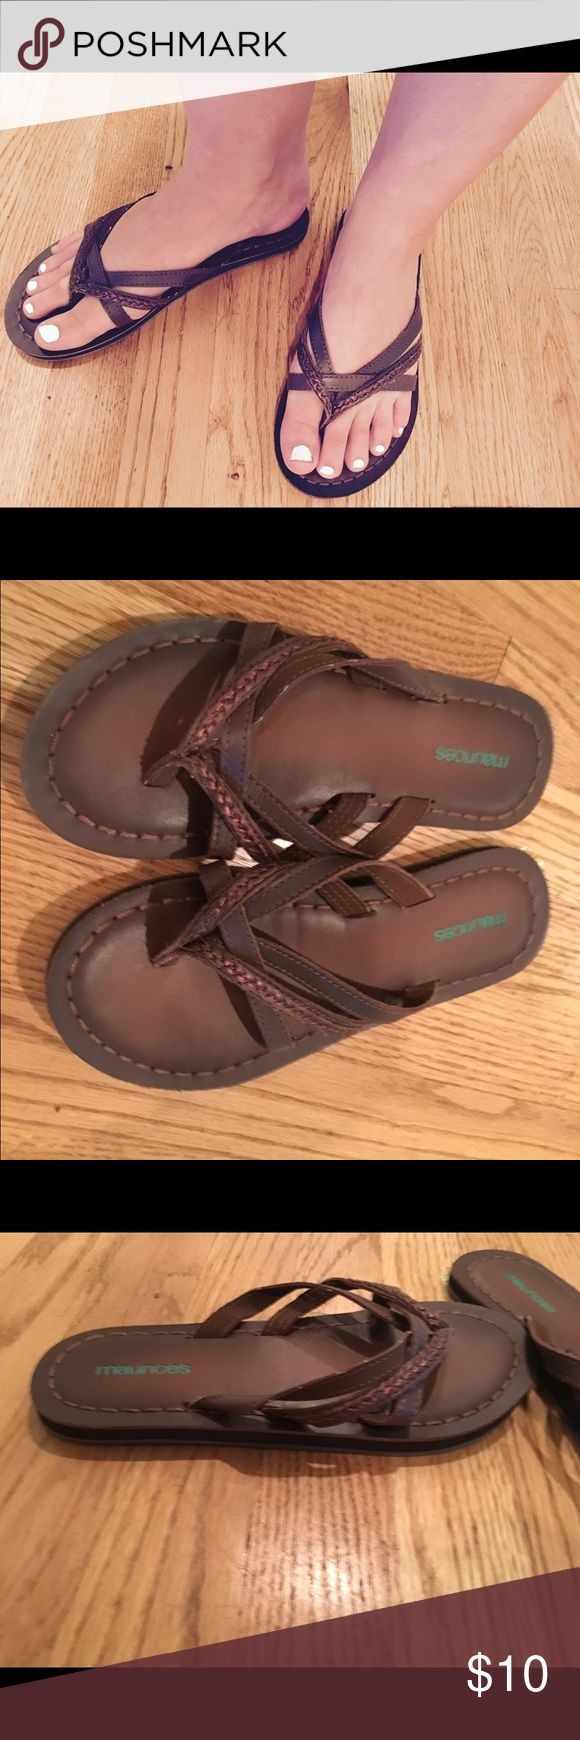 Women's/Junior's brown leather like sandals Brown, strappy, leather like flip flop sandals. Perfect condition. Only worn once. Size 6.5, from Maurices. Maurices Shoes Sandals